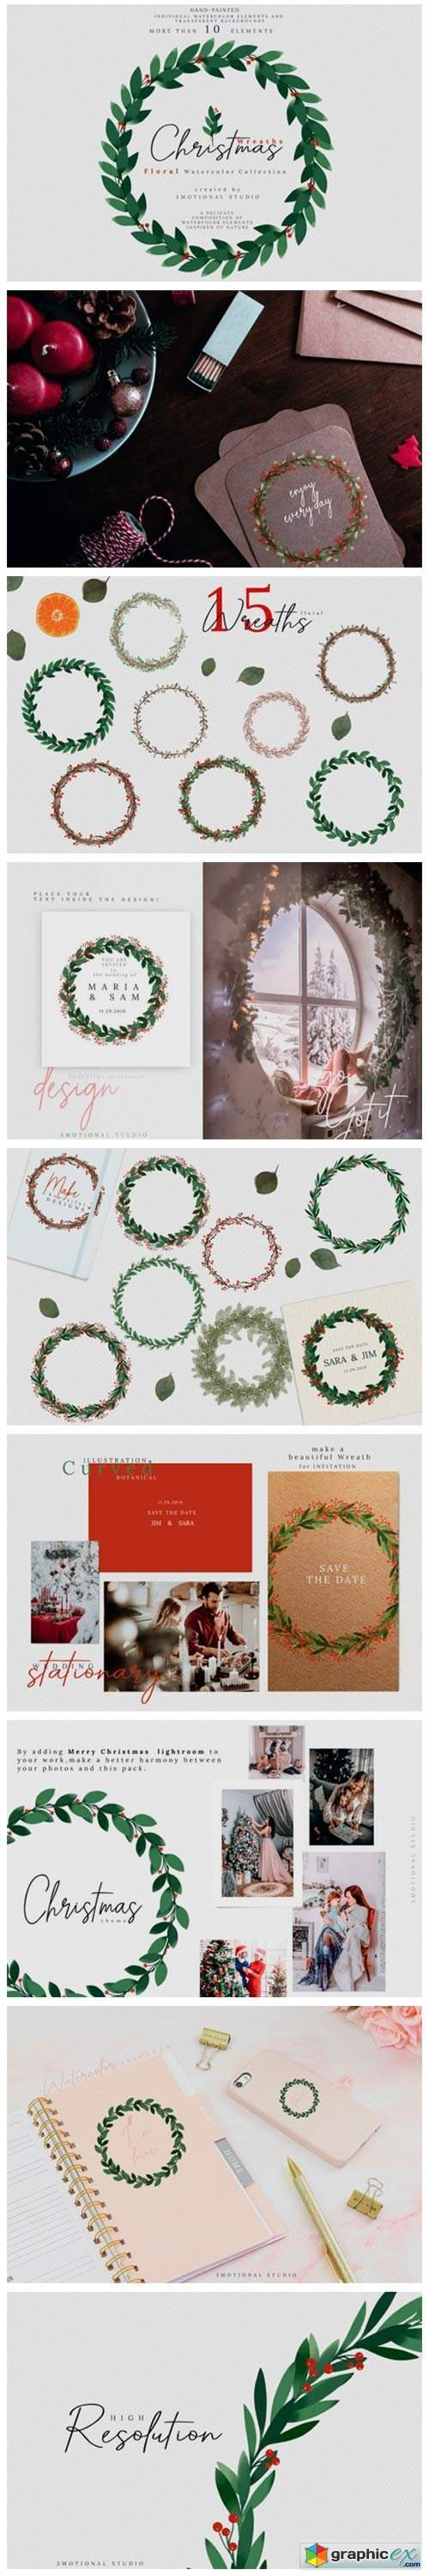 Christmas Watercolor Wreaths Collection